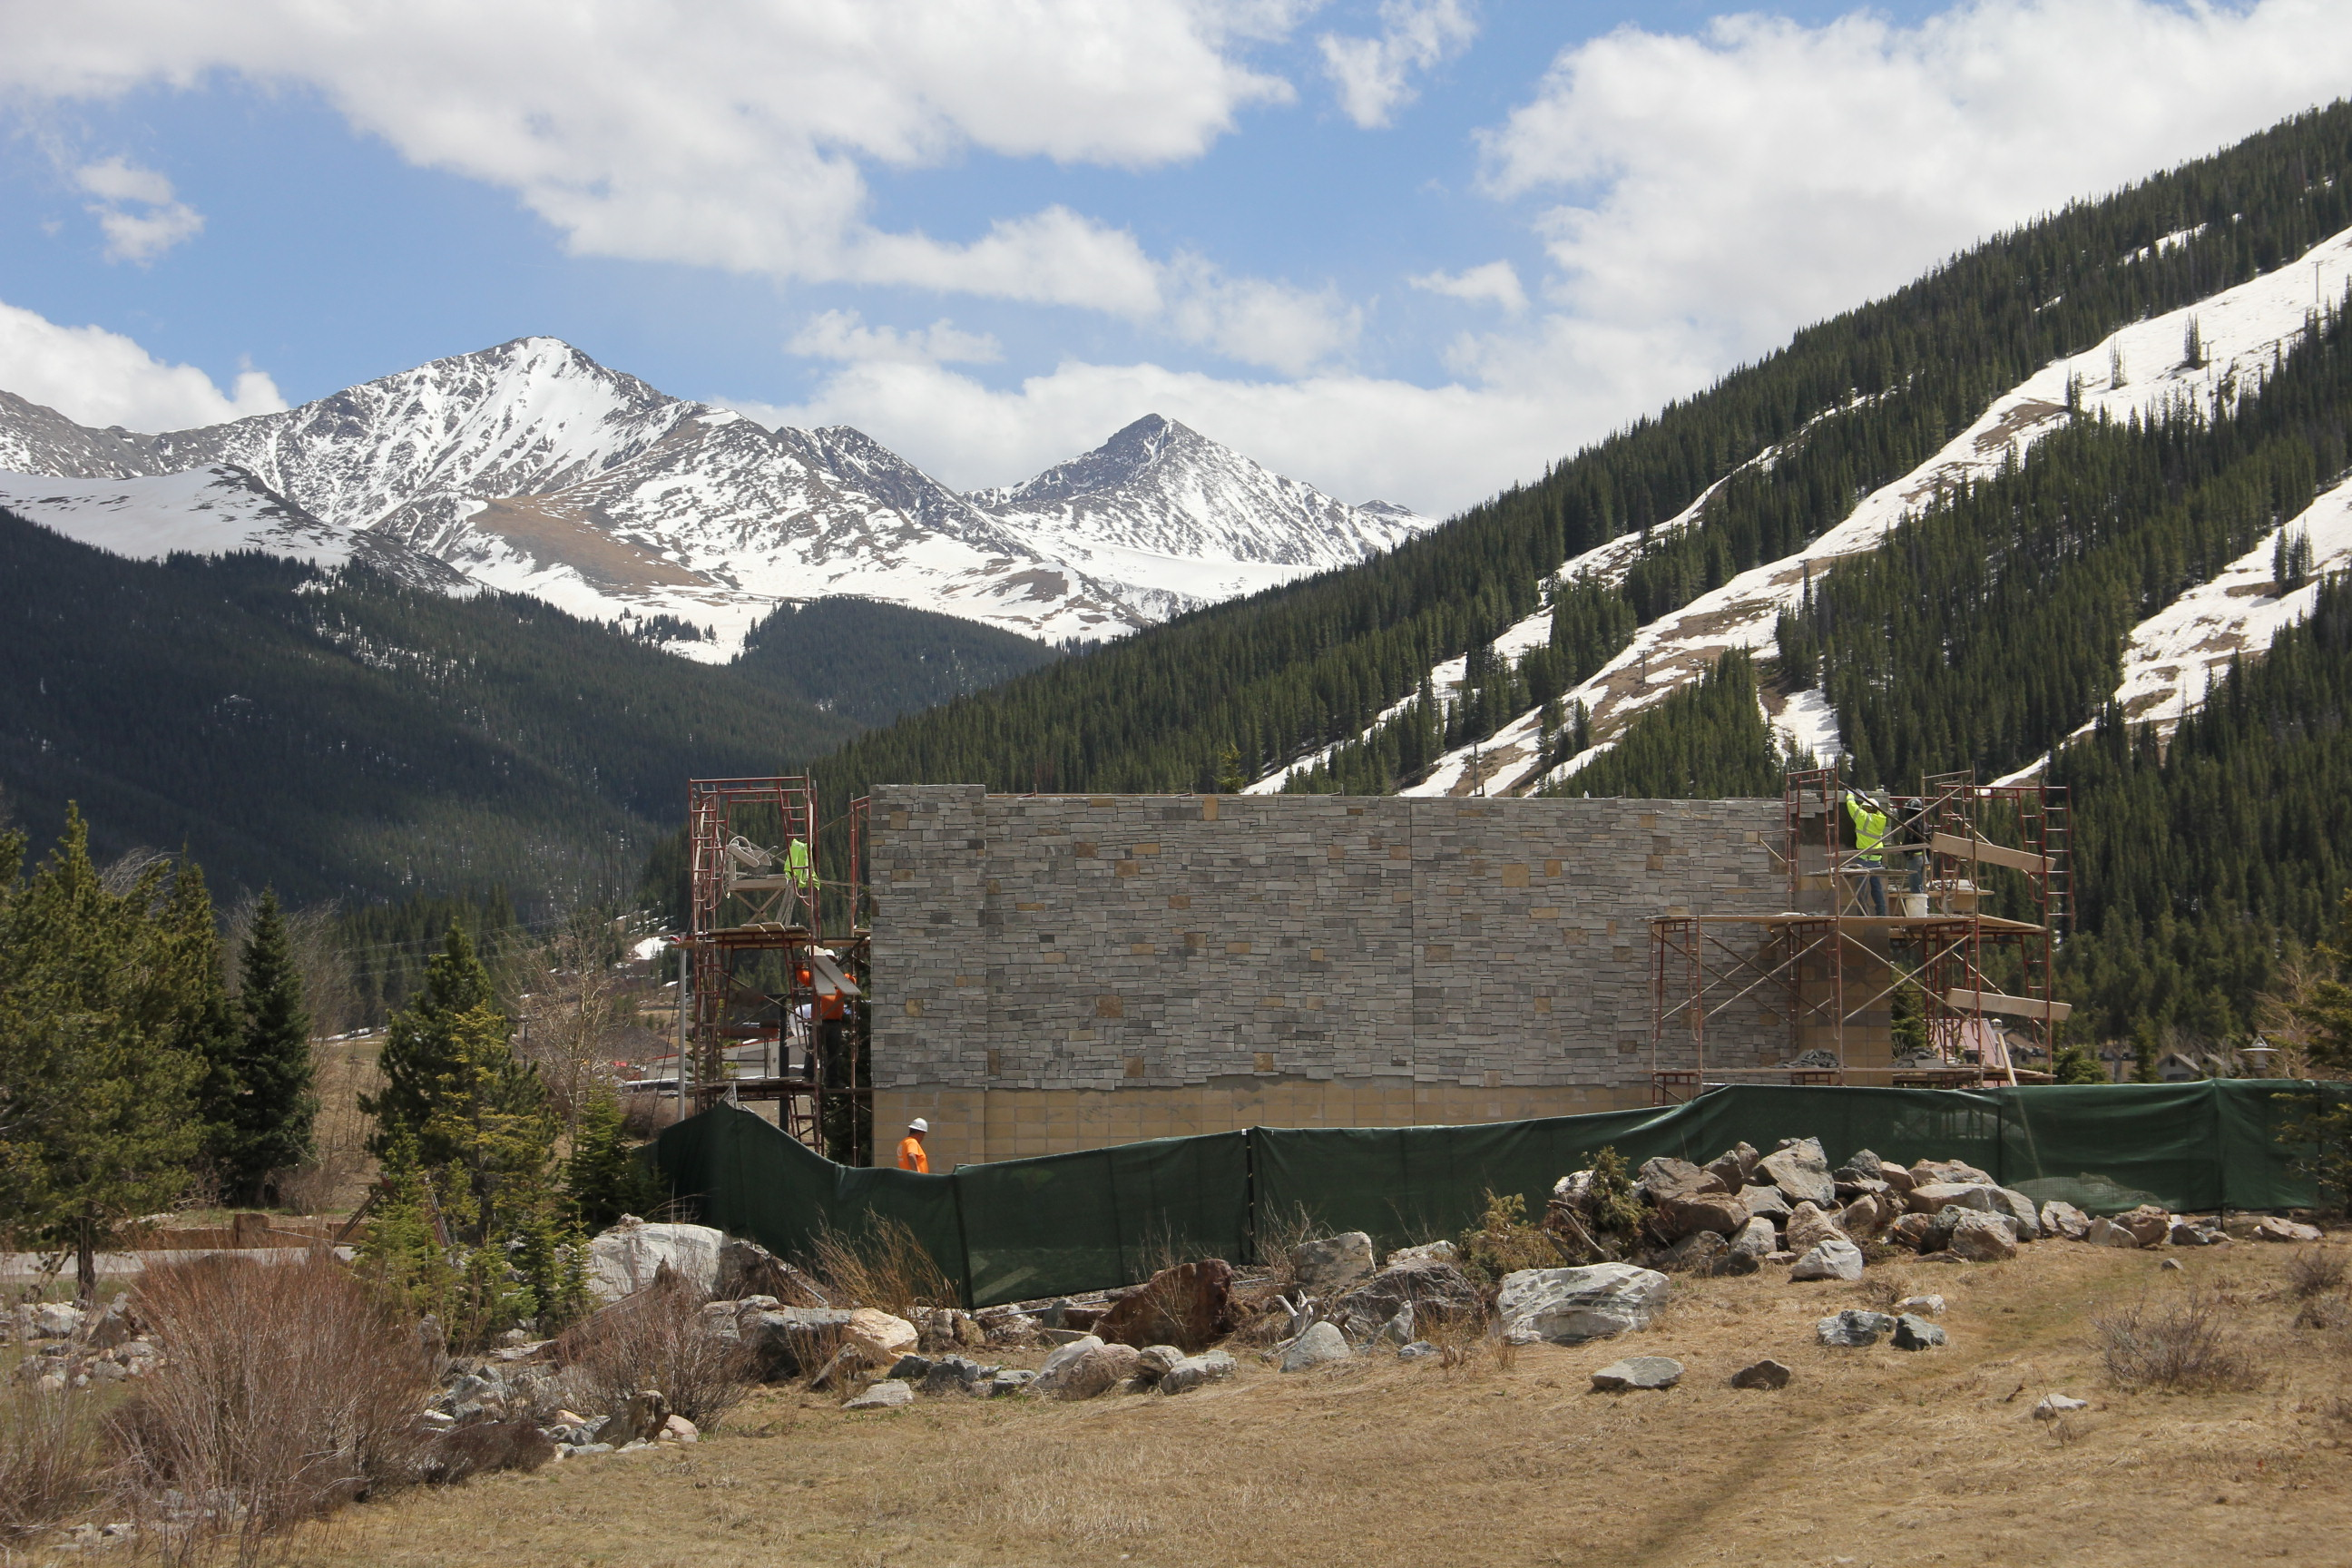 A view of the Copper Mountain entry monument being built, tall rock formation with view of the mountains behind it